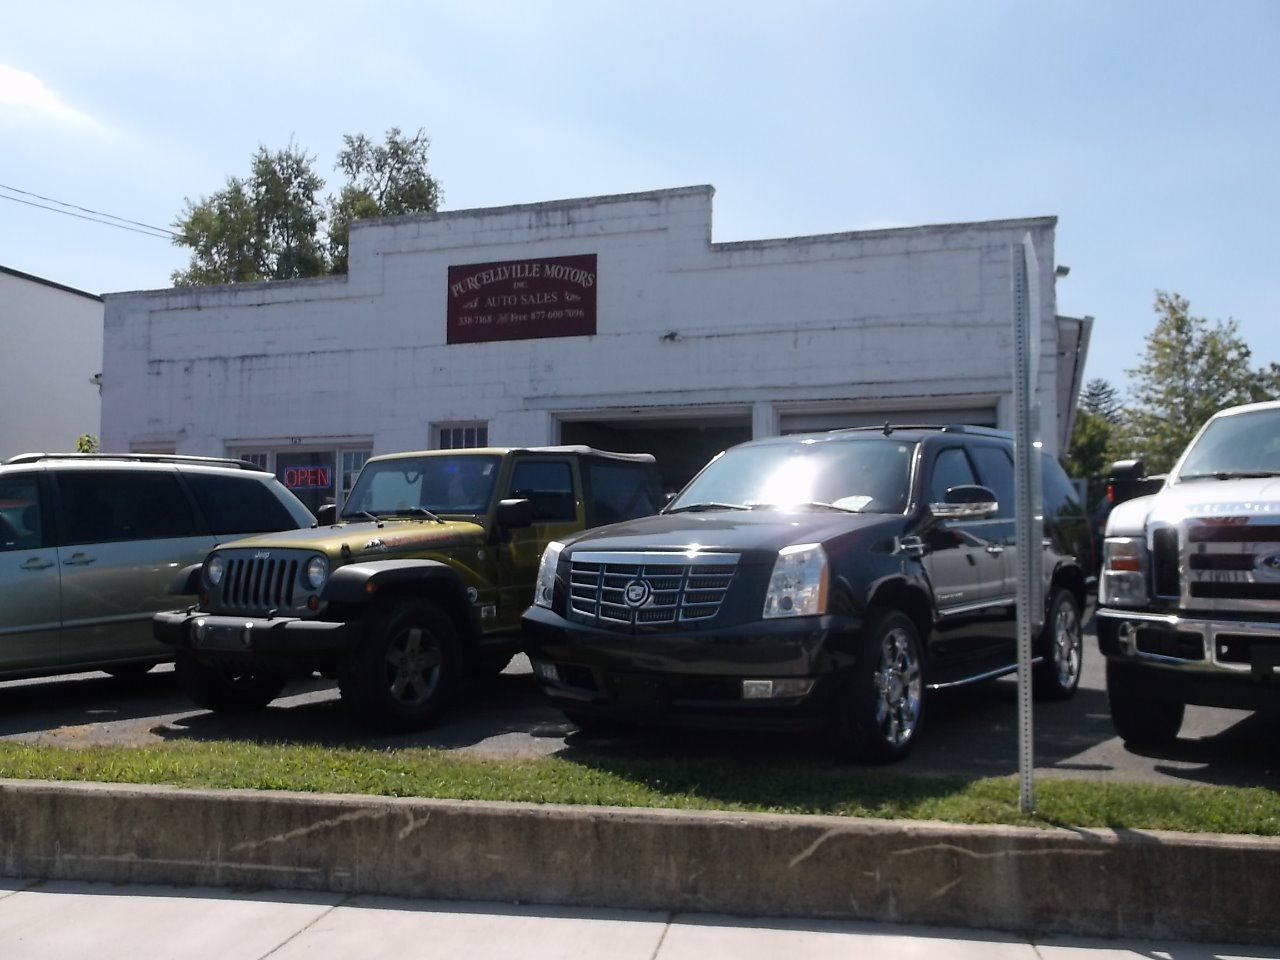 Purcellville Motors